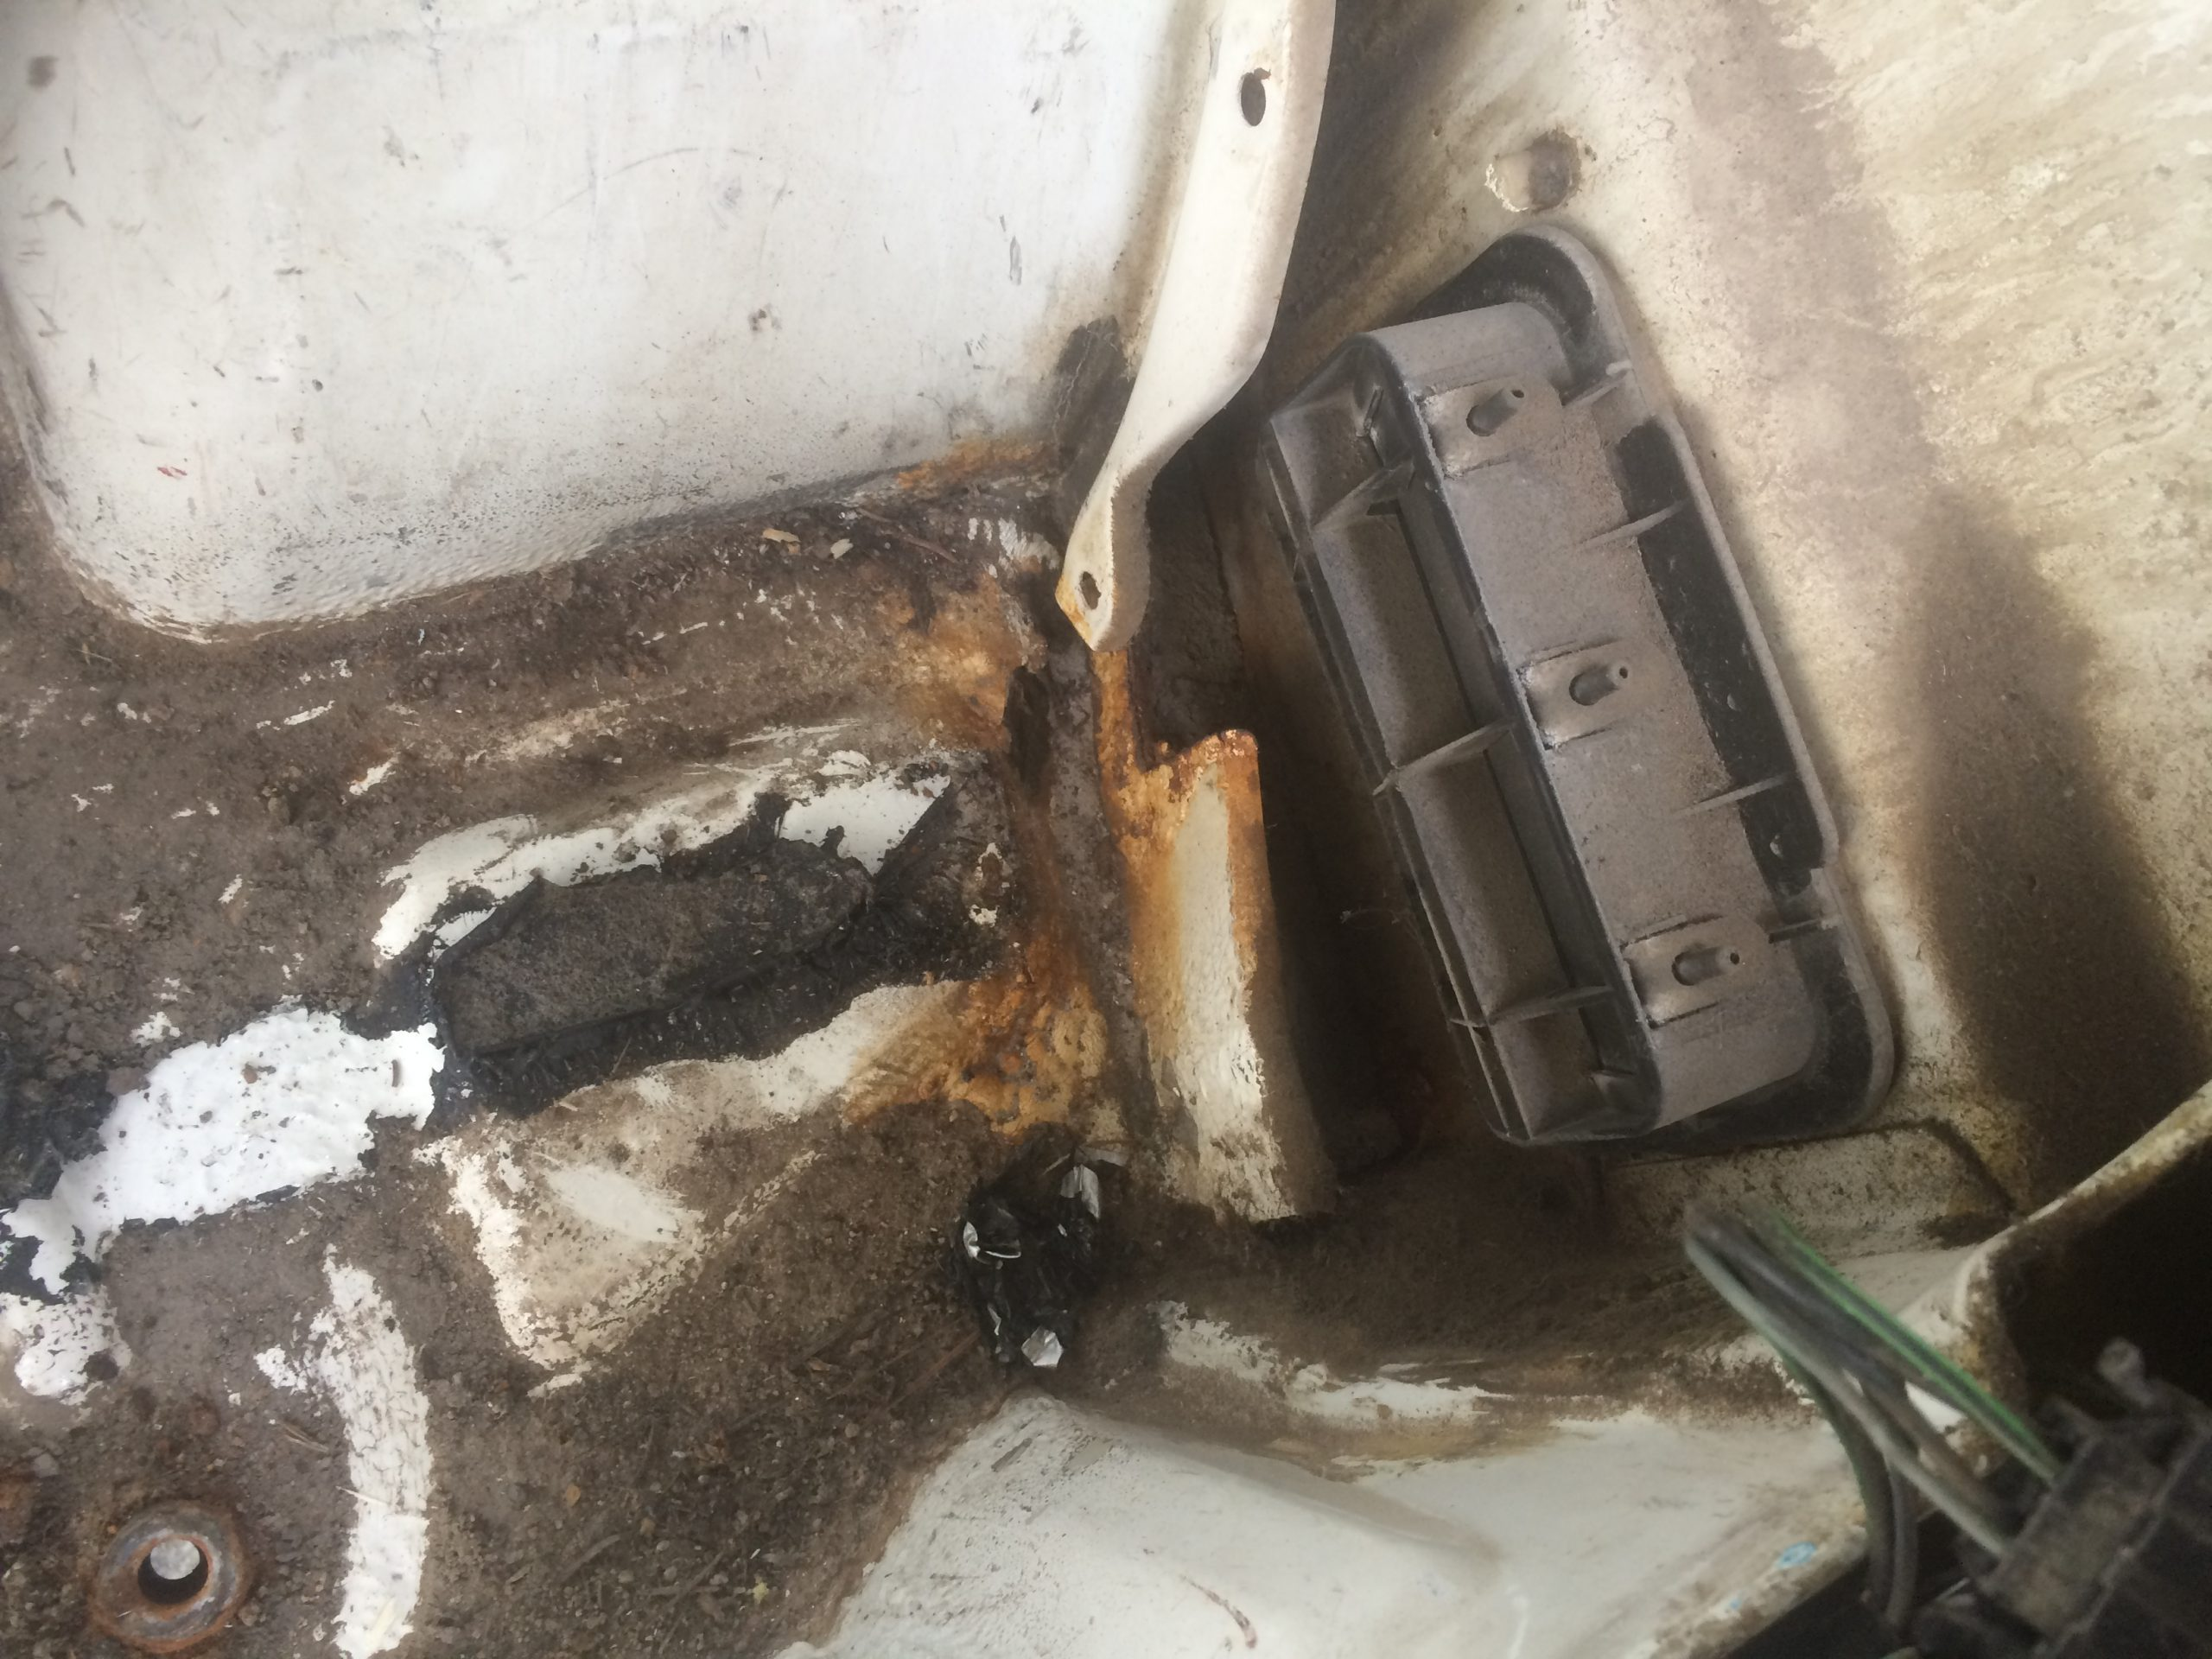 VW T4 Project – Interior construction - Removal of all Seats - a hole in the back right, one more place of welding trouble